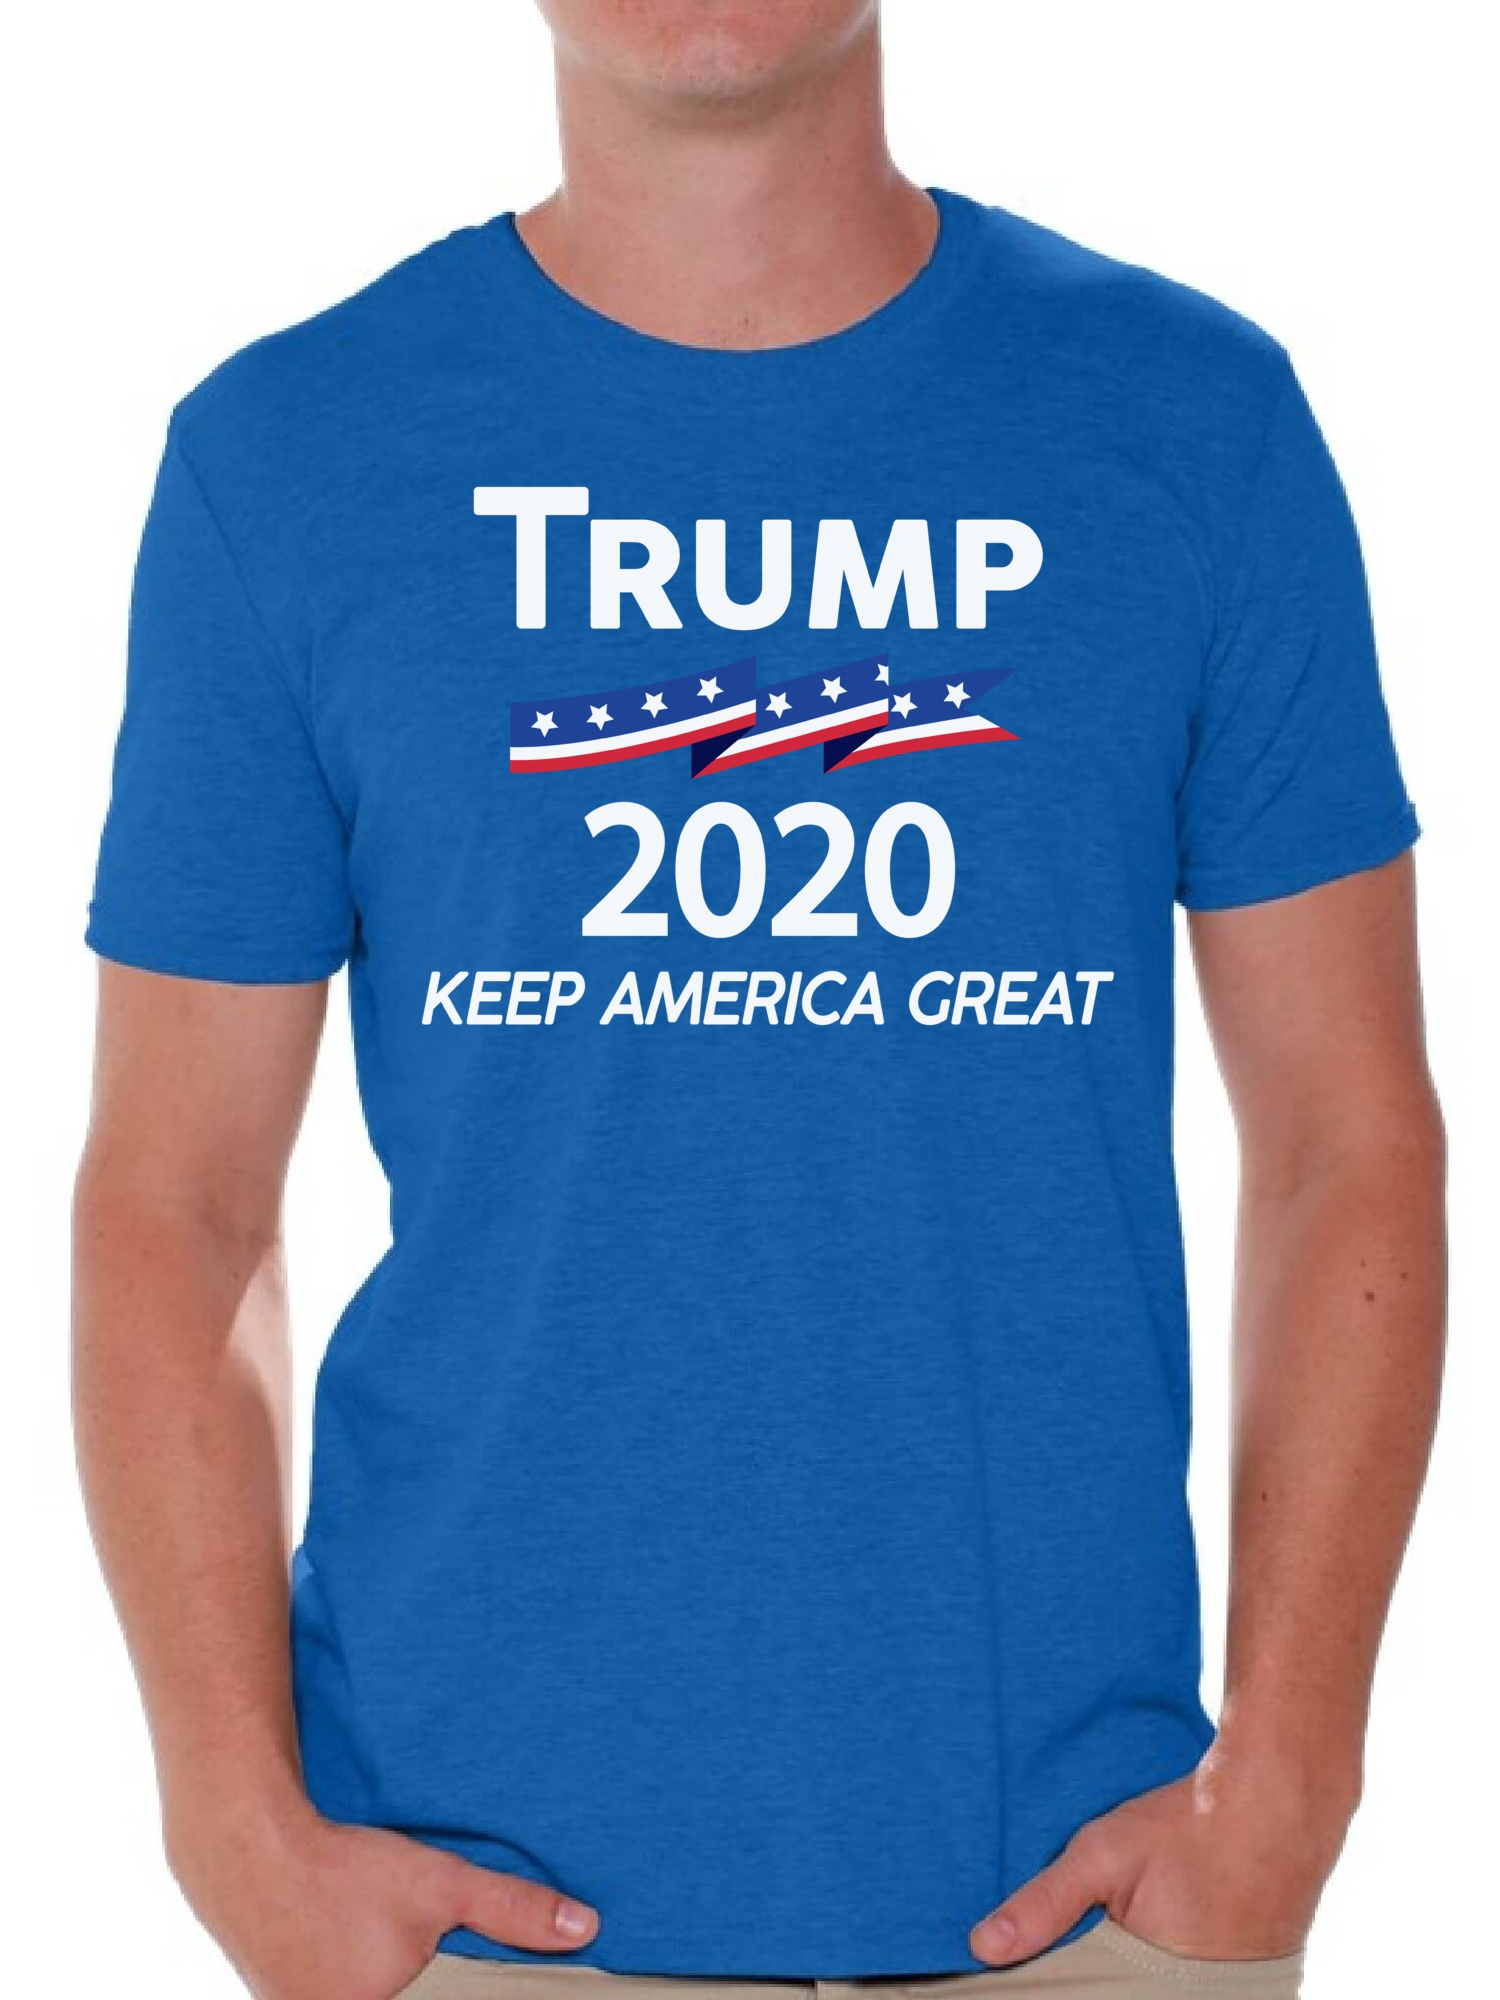 President 4th Of July Shirts : president, shirts, Awkward, Styles, Trump, Shirt, America, Great, Tshirt, Donald, Funny, Gifts, Republican, Patriotic, Shirts